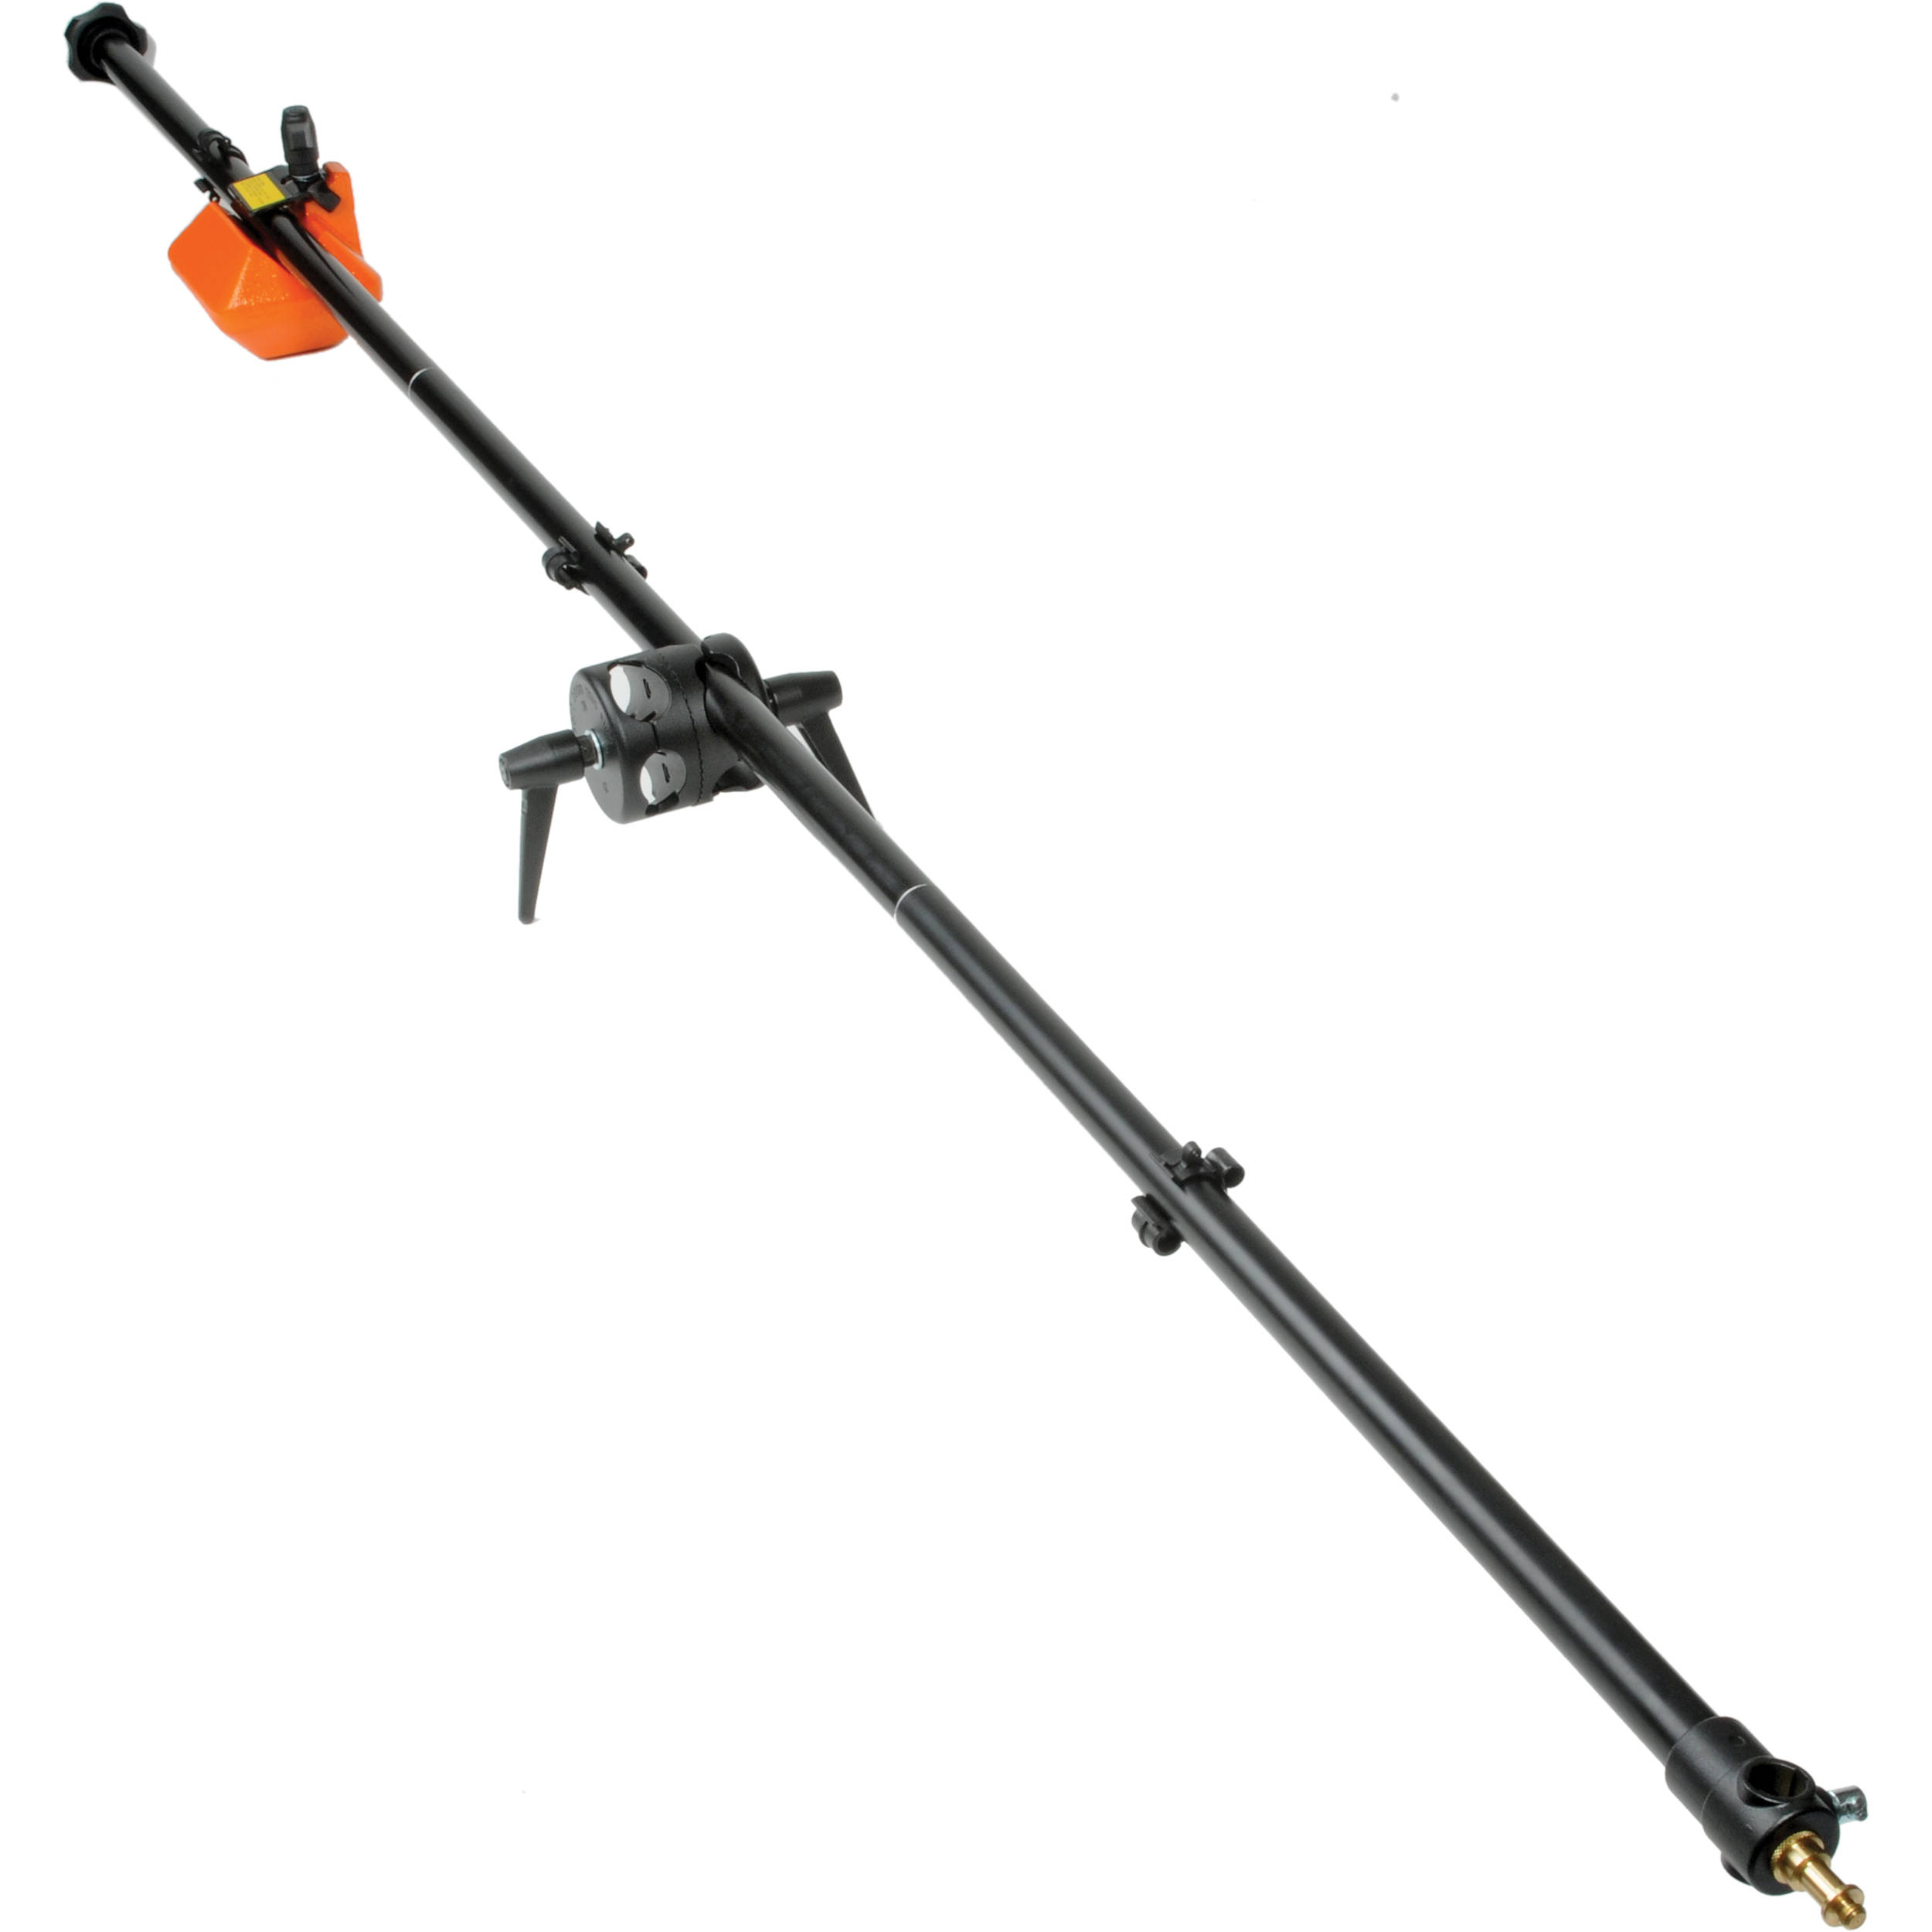 Manfrotto Boom Assembly Black